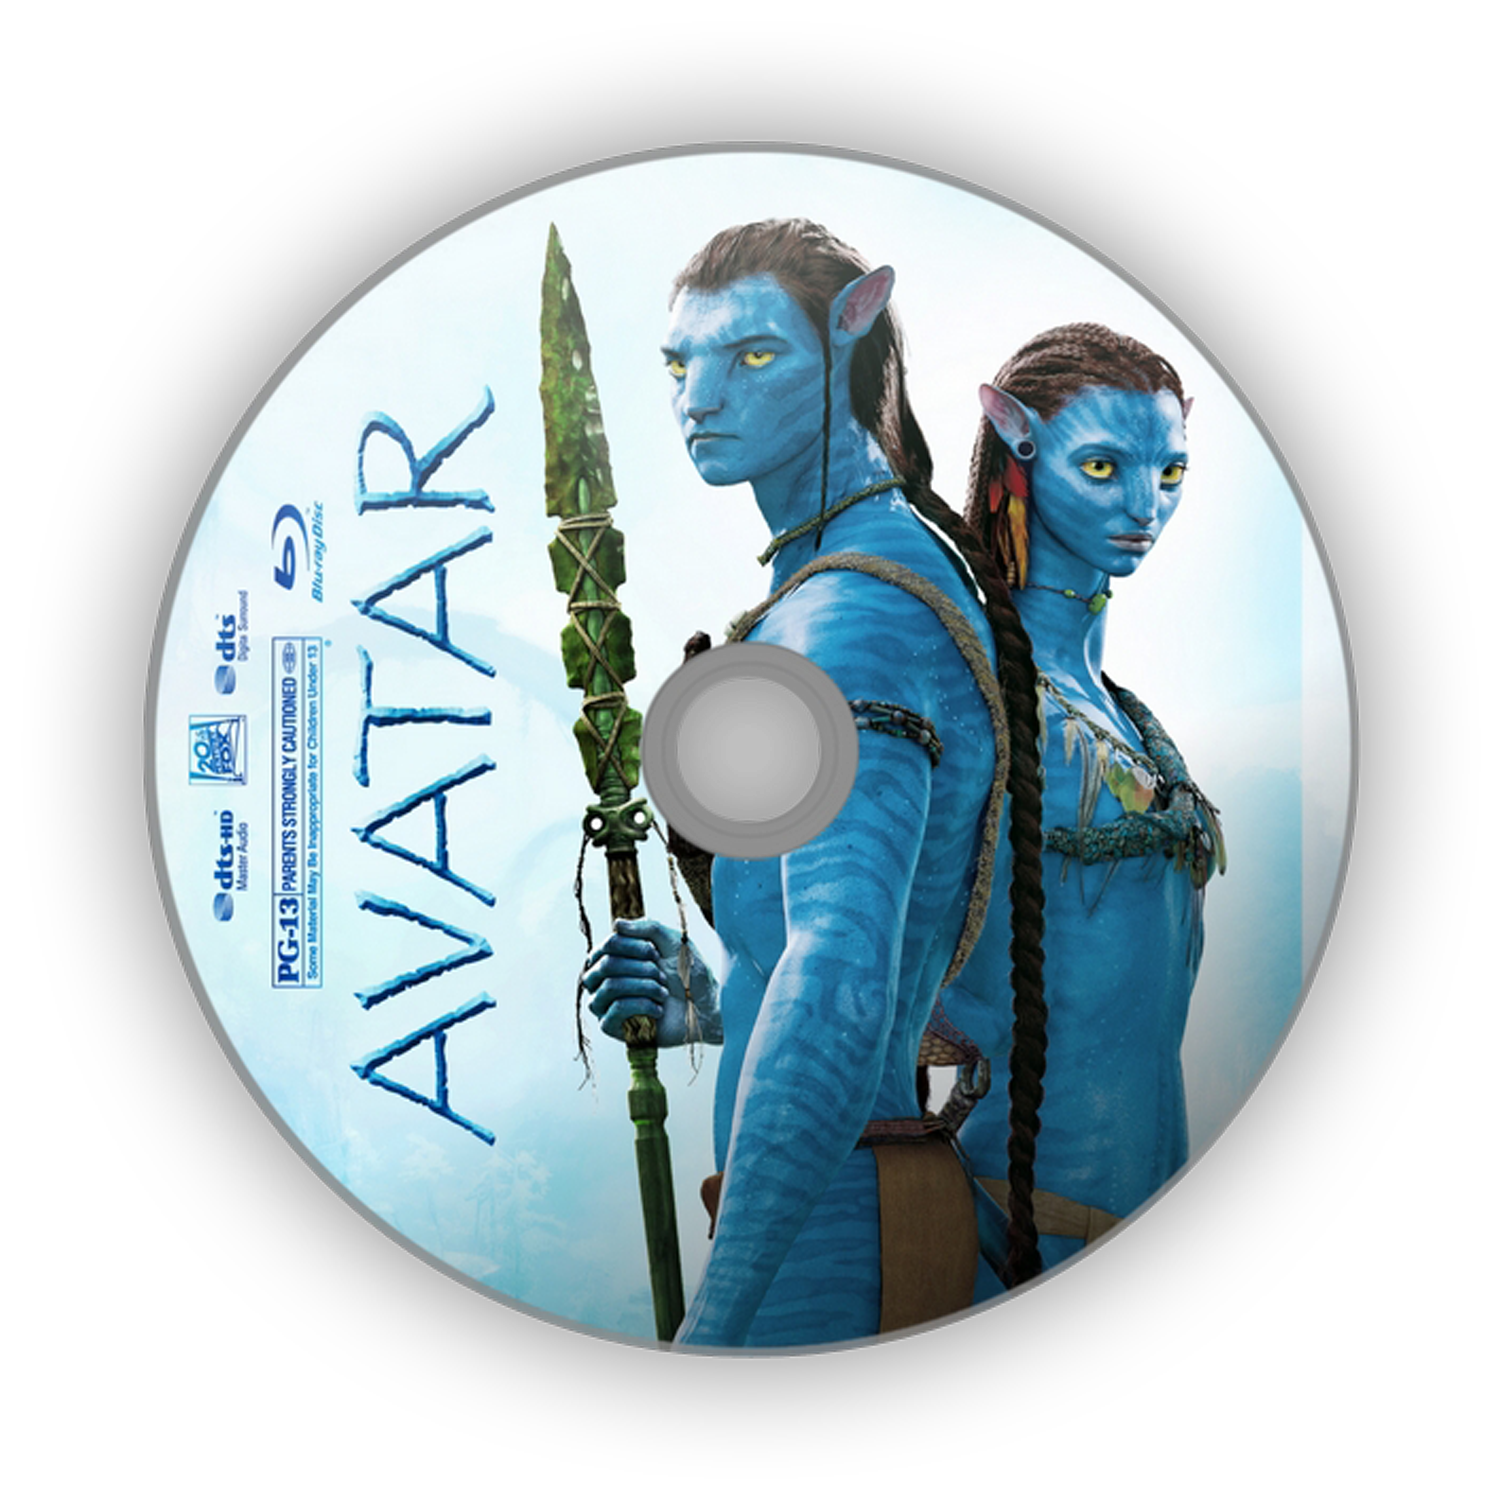 http://2.bp.blogspot.com/-VNKDuOibT_w/T9rzythHFxI/AAAAAAAAAbk/-Lj2_AwMKAE/s1600/avatar-movie-dvd-label-art6.png